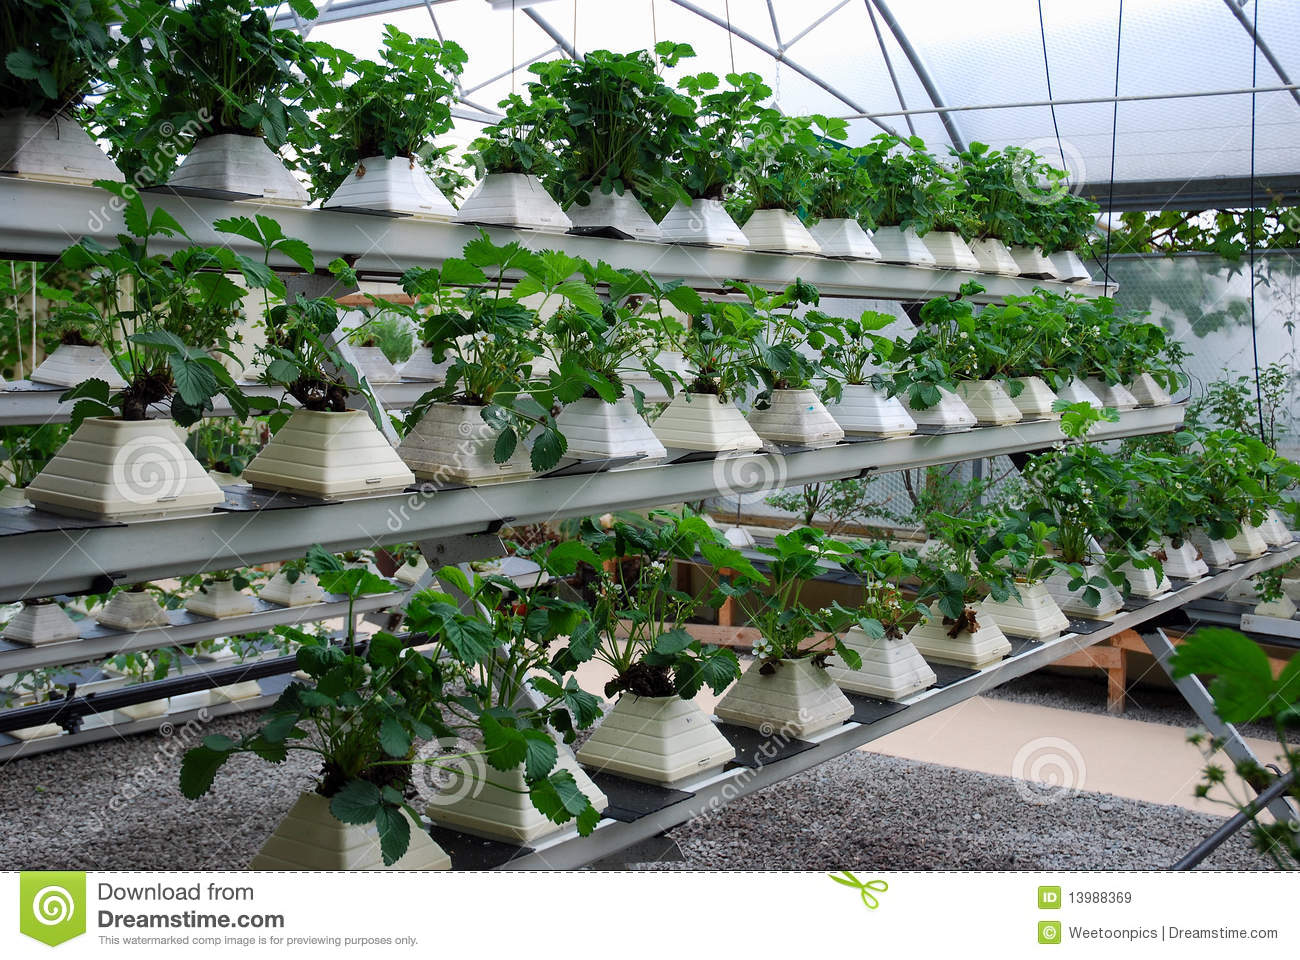 a description of the essentials of hydroponicsgardening without soil Hydroponics is the science of growing plants without soil a person who grows plants delivers the water and nutrients directly to the roots of the plant.